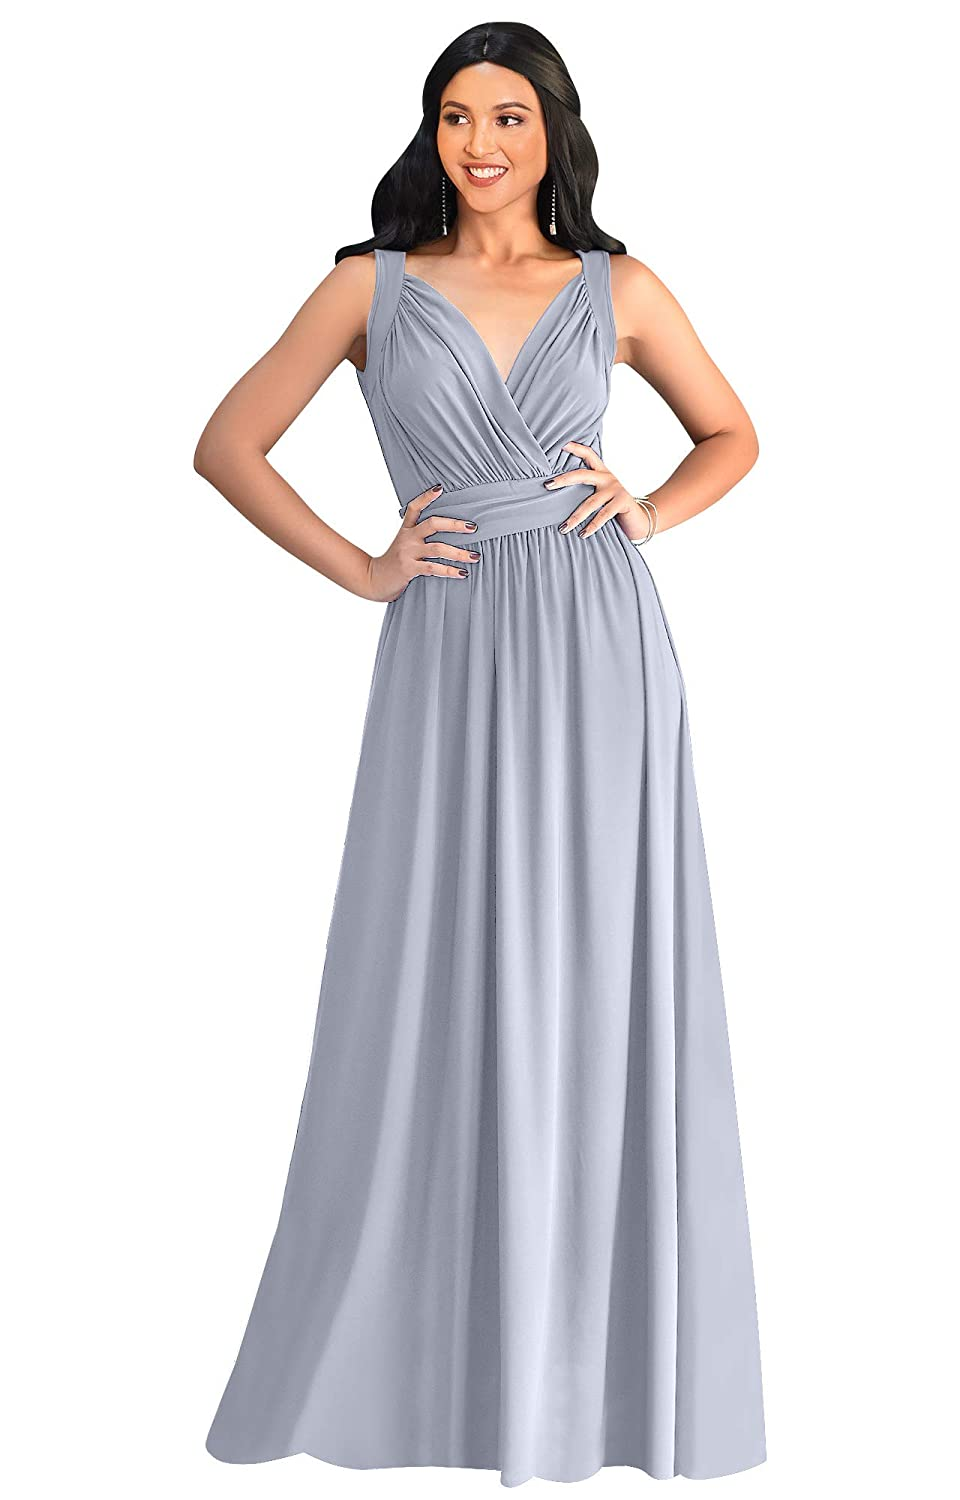 Vintage Evening Dresses and Formal Evening Gowns KOH KOH Womens Long Sleeveless Flowy Bridesmaid Cocktail Evening Gown Maxi Dress $59.95 AT vintagedancer.com